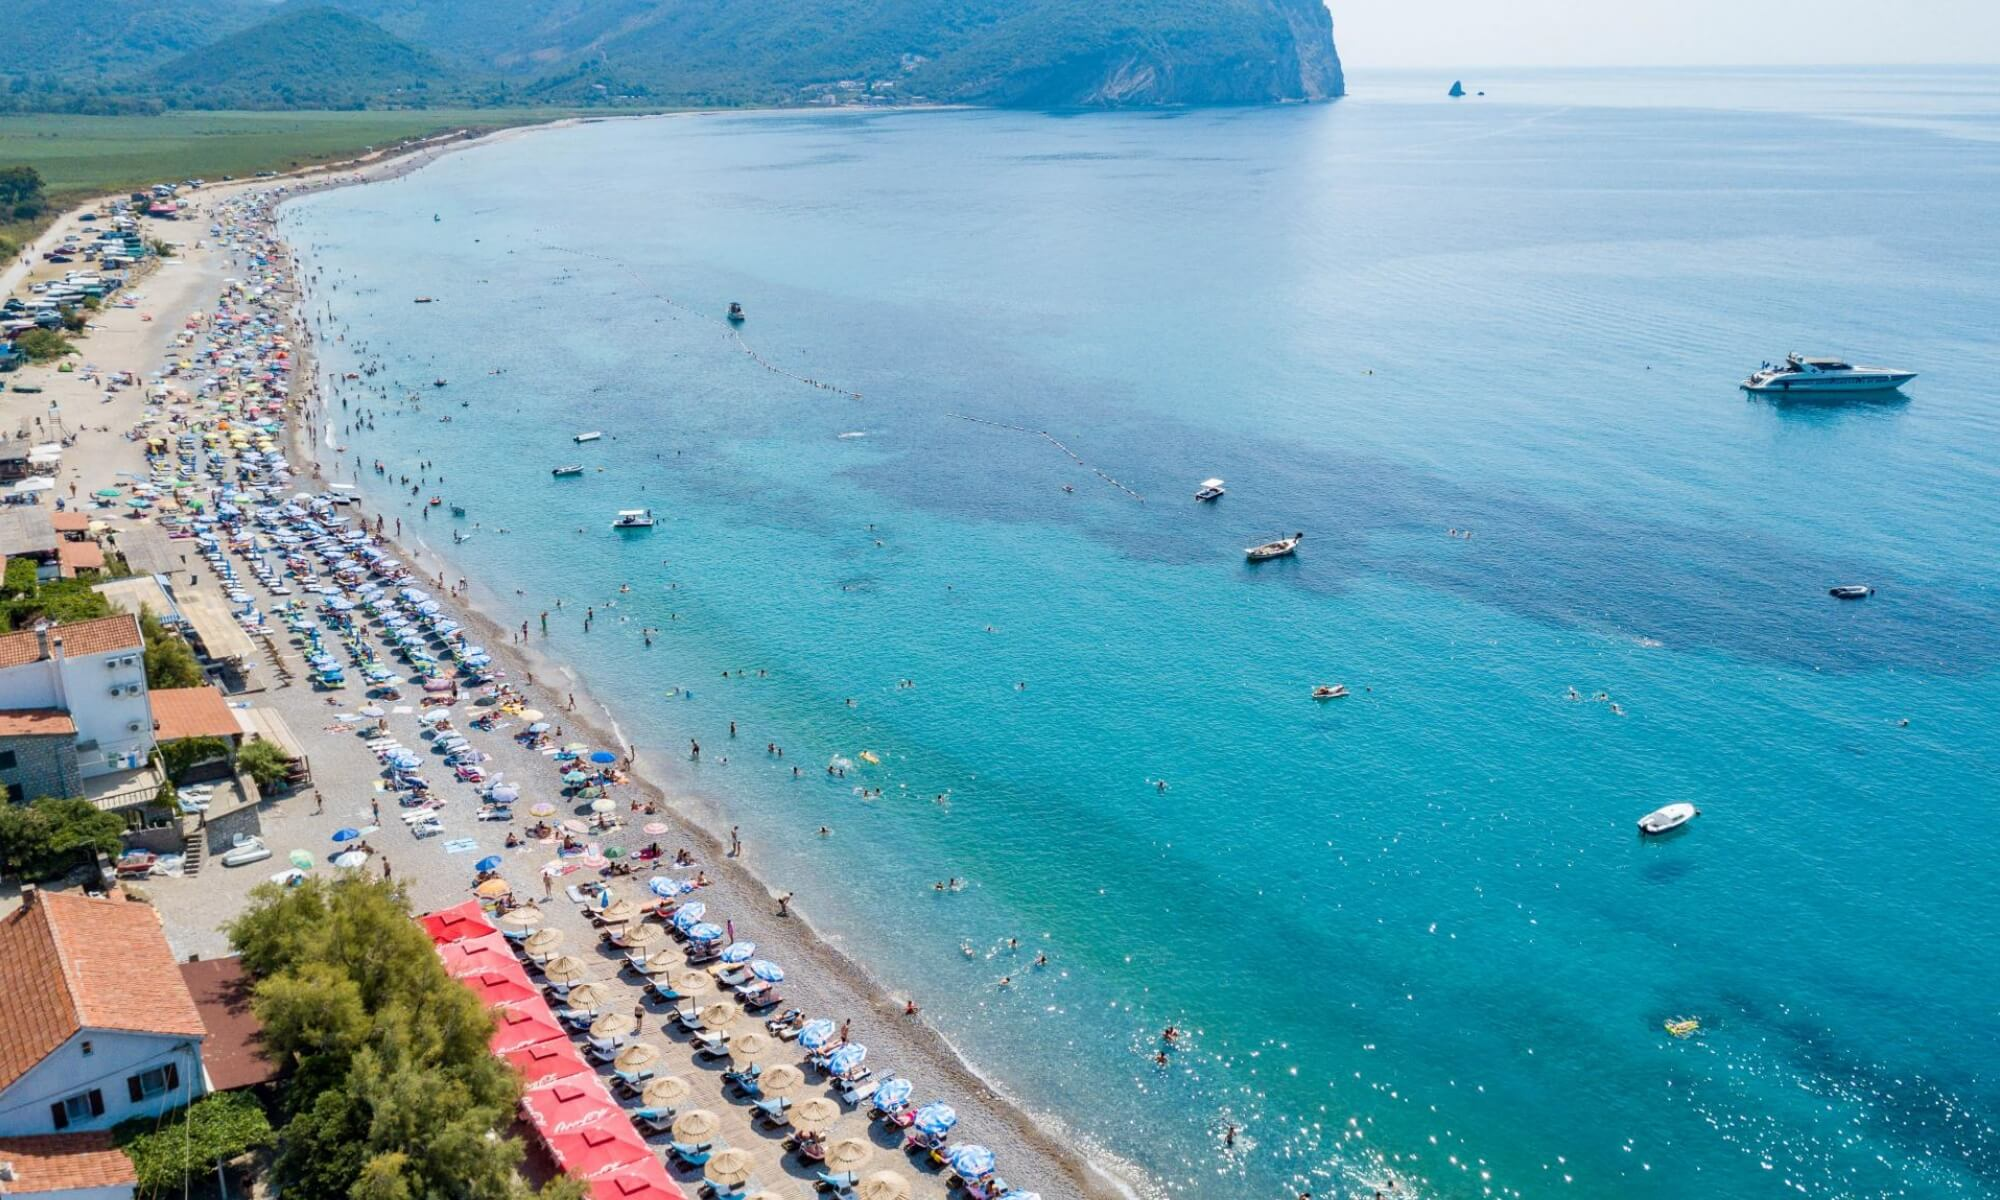 Budva listed as Number One Holiday Destination for Summer 2019 by Macedonian Portal Radar.mk 3